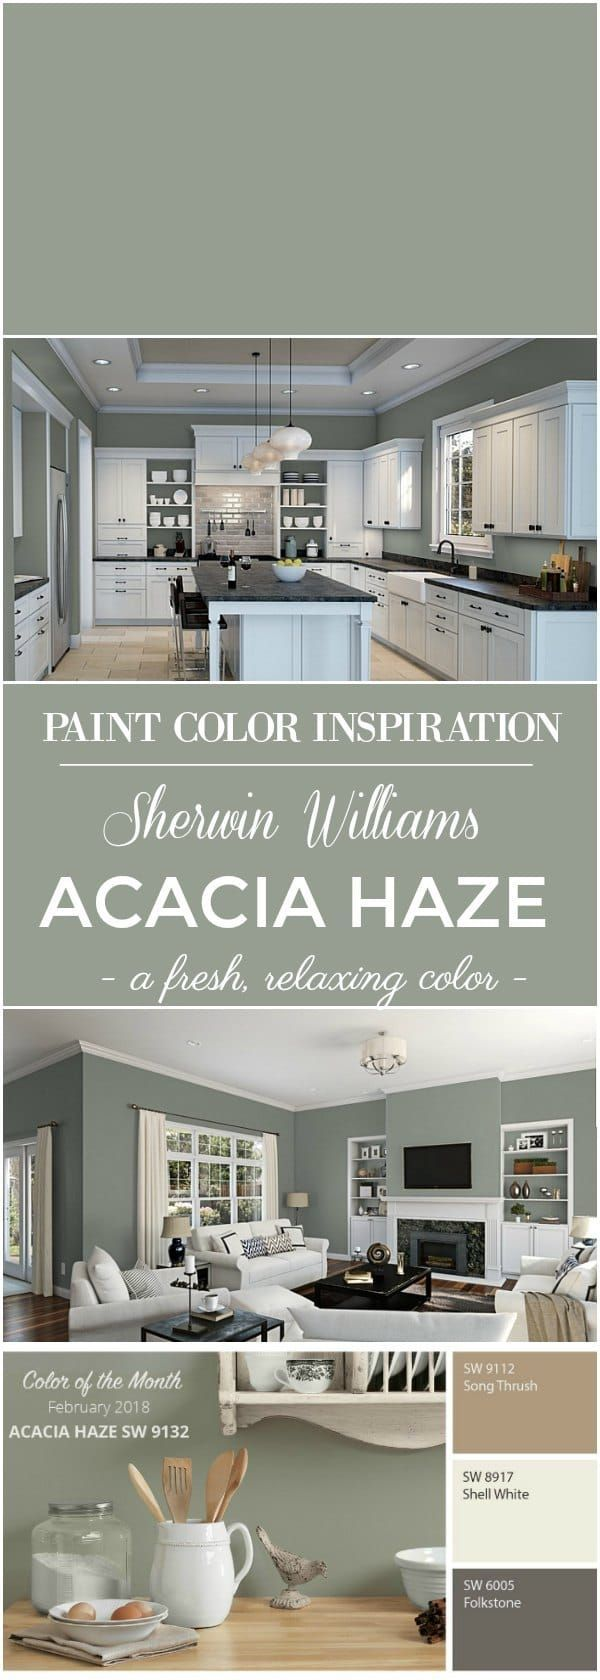 Color Inspiration - Sherwin Williams Acacia Haze Paint Color! This beautiful green paint color is the perfect color choice for the walls of a bedroom, living room, kitchen or for exterior siding and shutters of a home! This neutral paint color is fresh and relaxing! #paint #wall #colors #homedecor